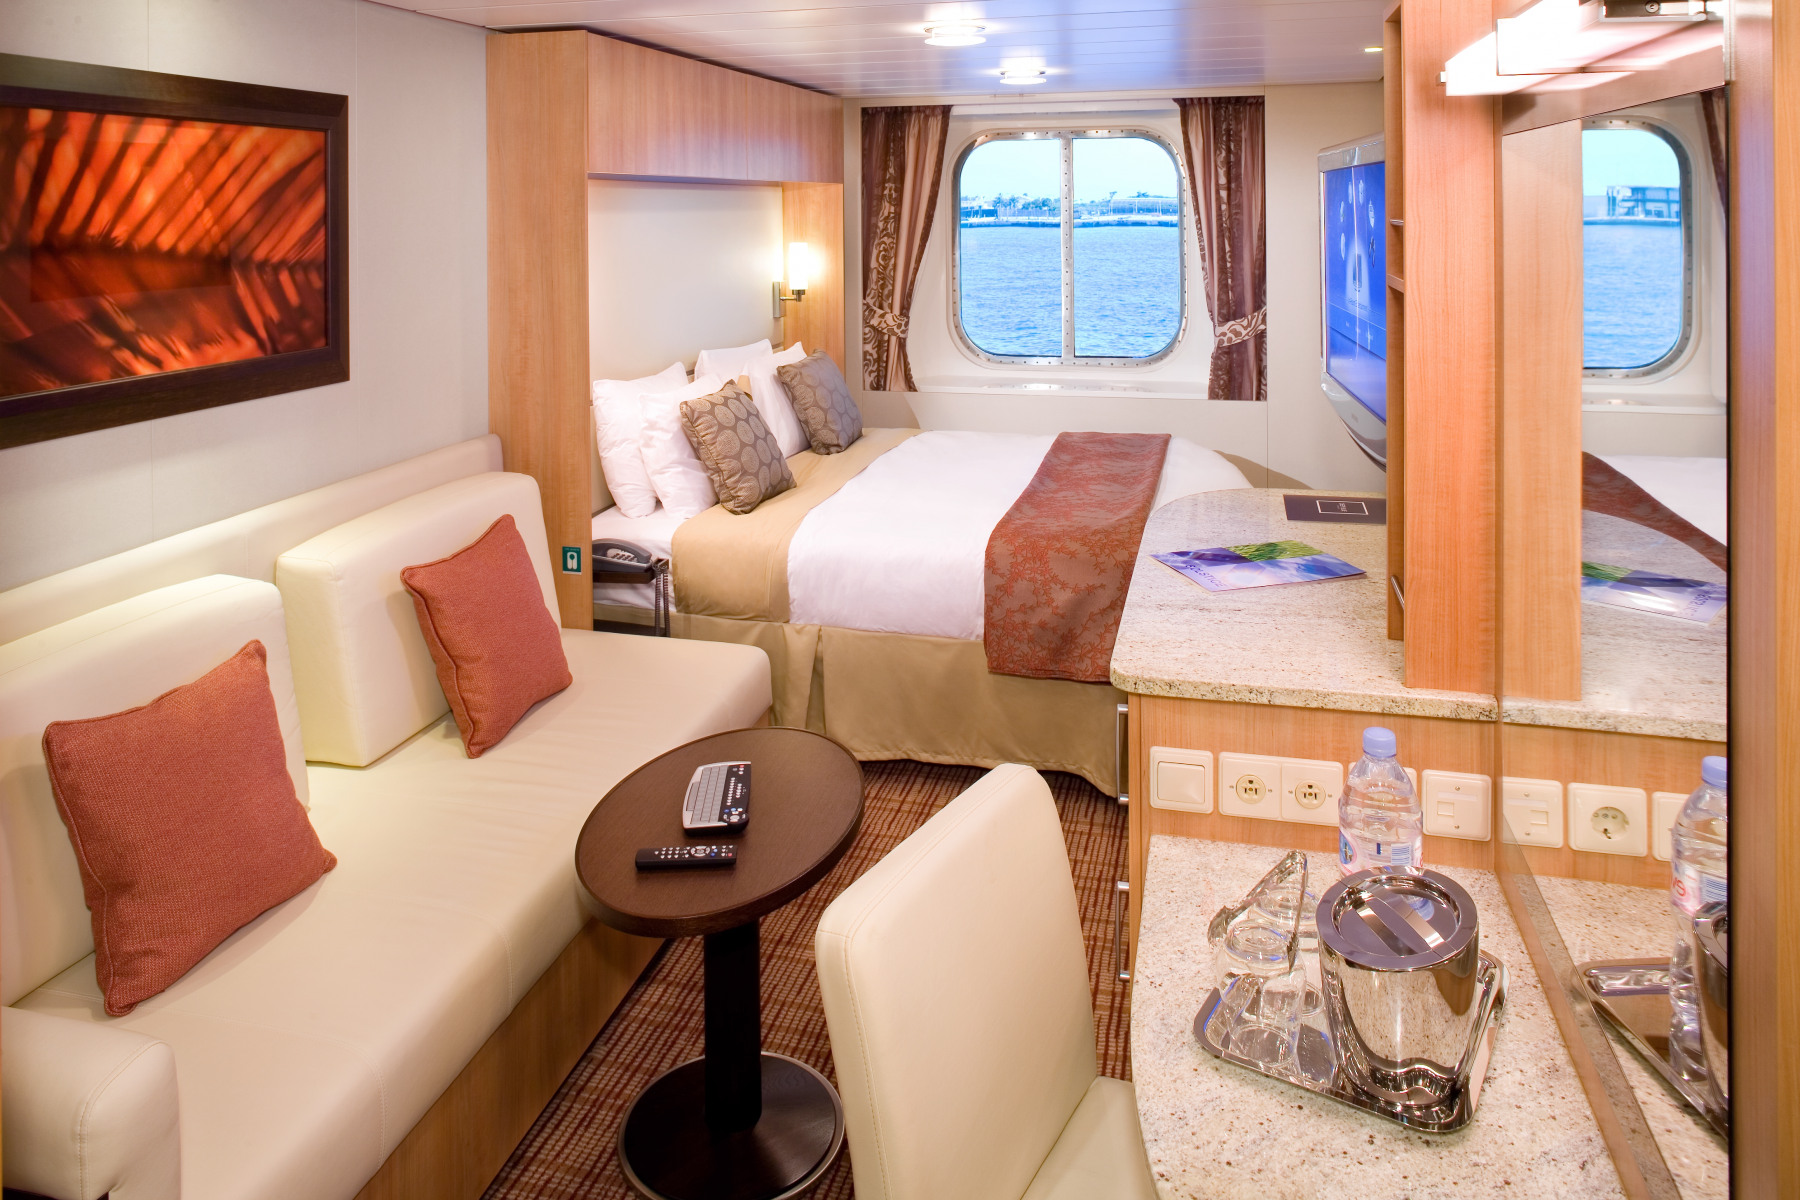 celebrity cruises celebrity eclipse accommodation ocean view stateroom.jpg